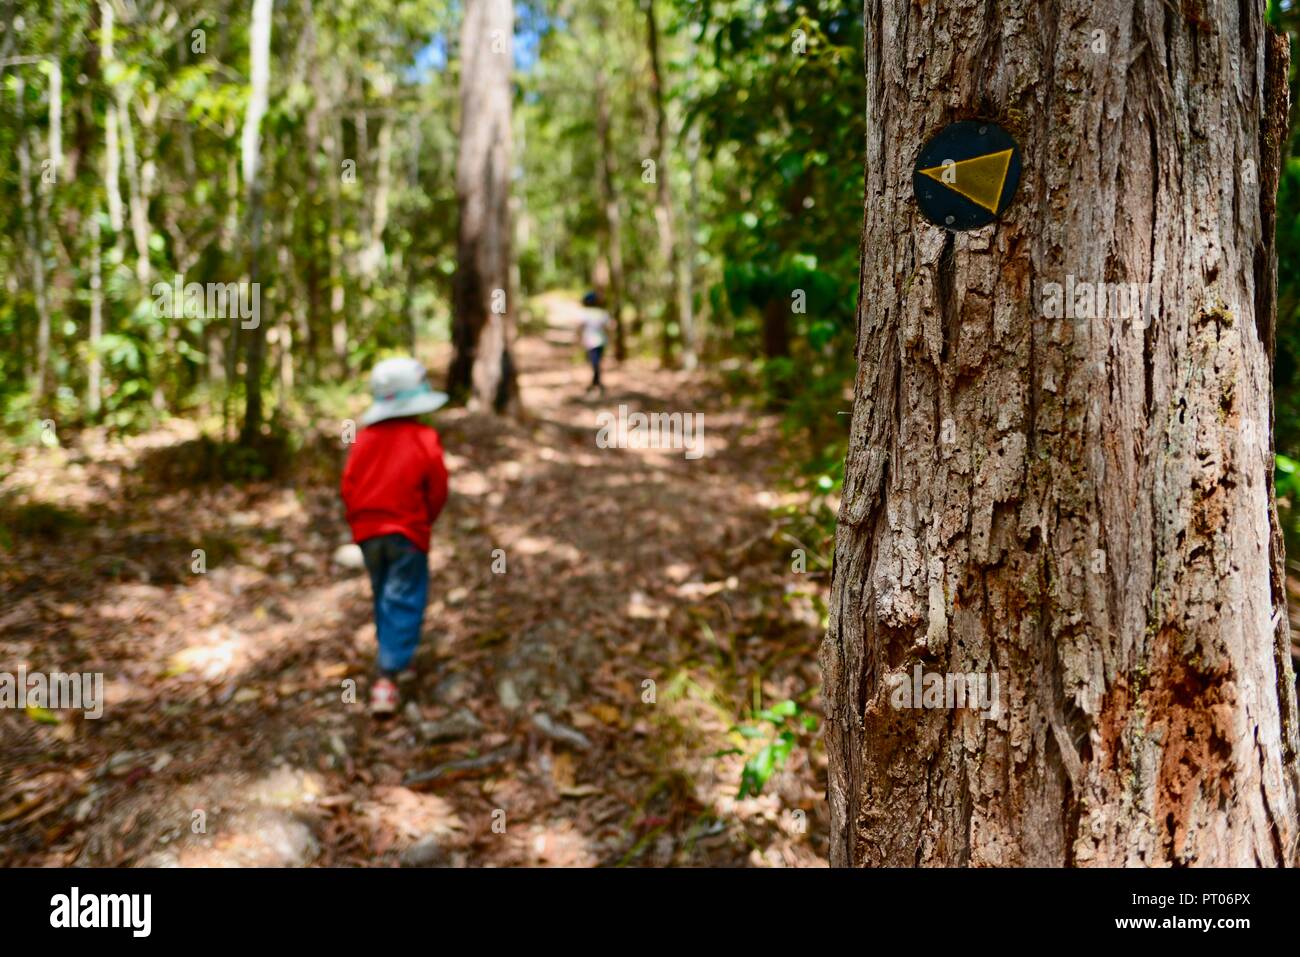 Kids walking through the woods, Dalrymple gap, QLD, Australia Stock Photo